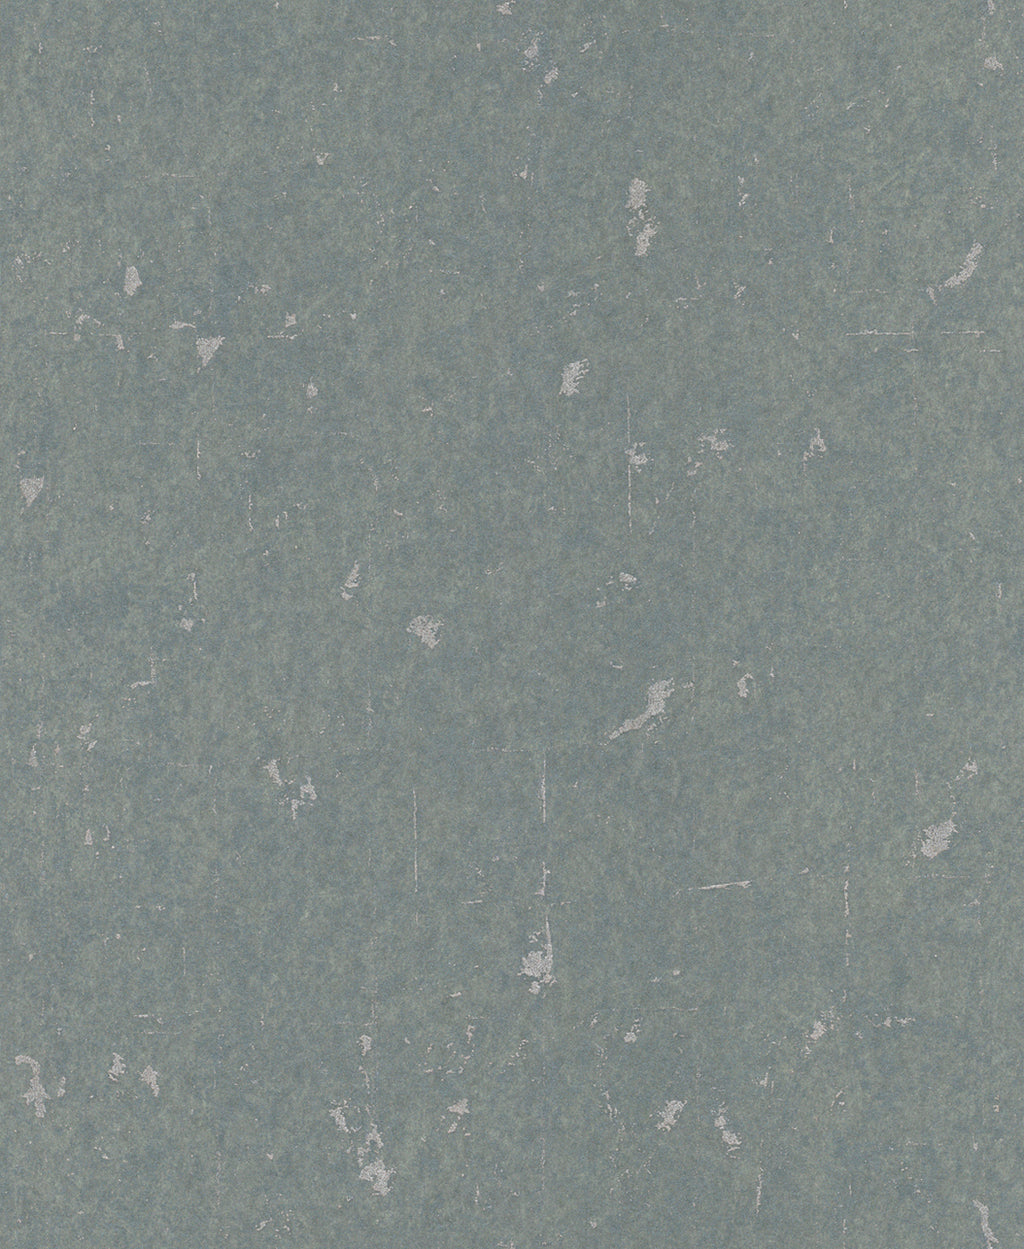 Metallic Scratched Industrial Wallpaper Teal and Silver R4738